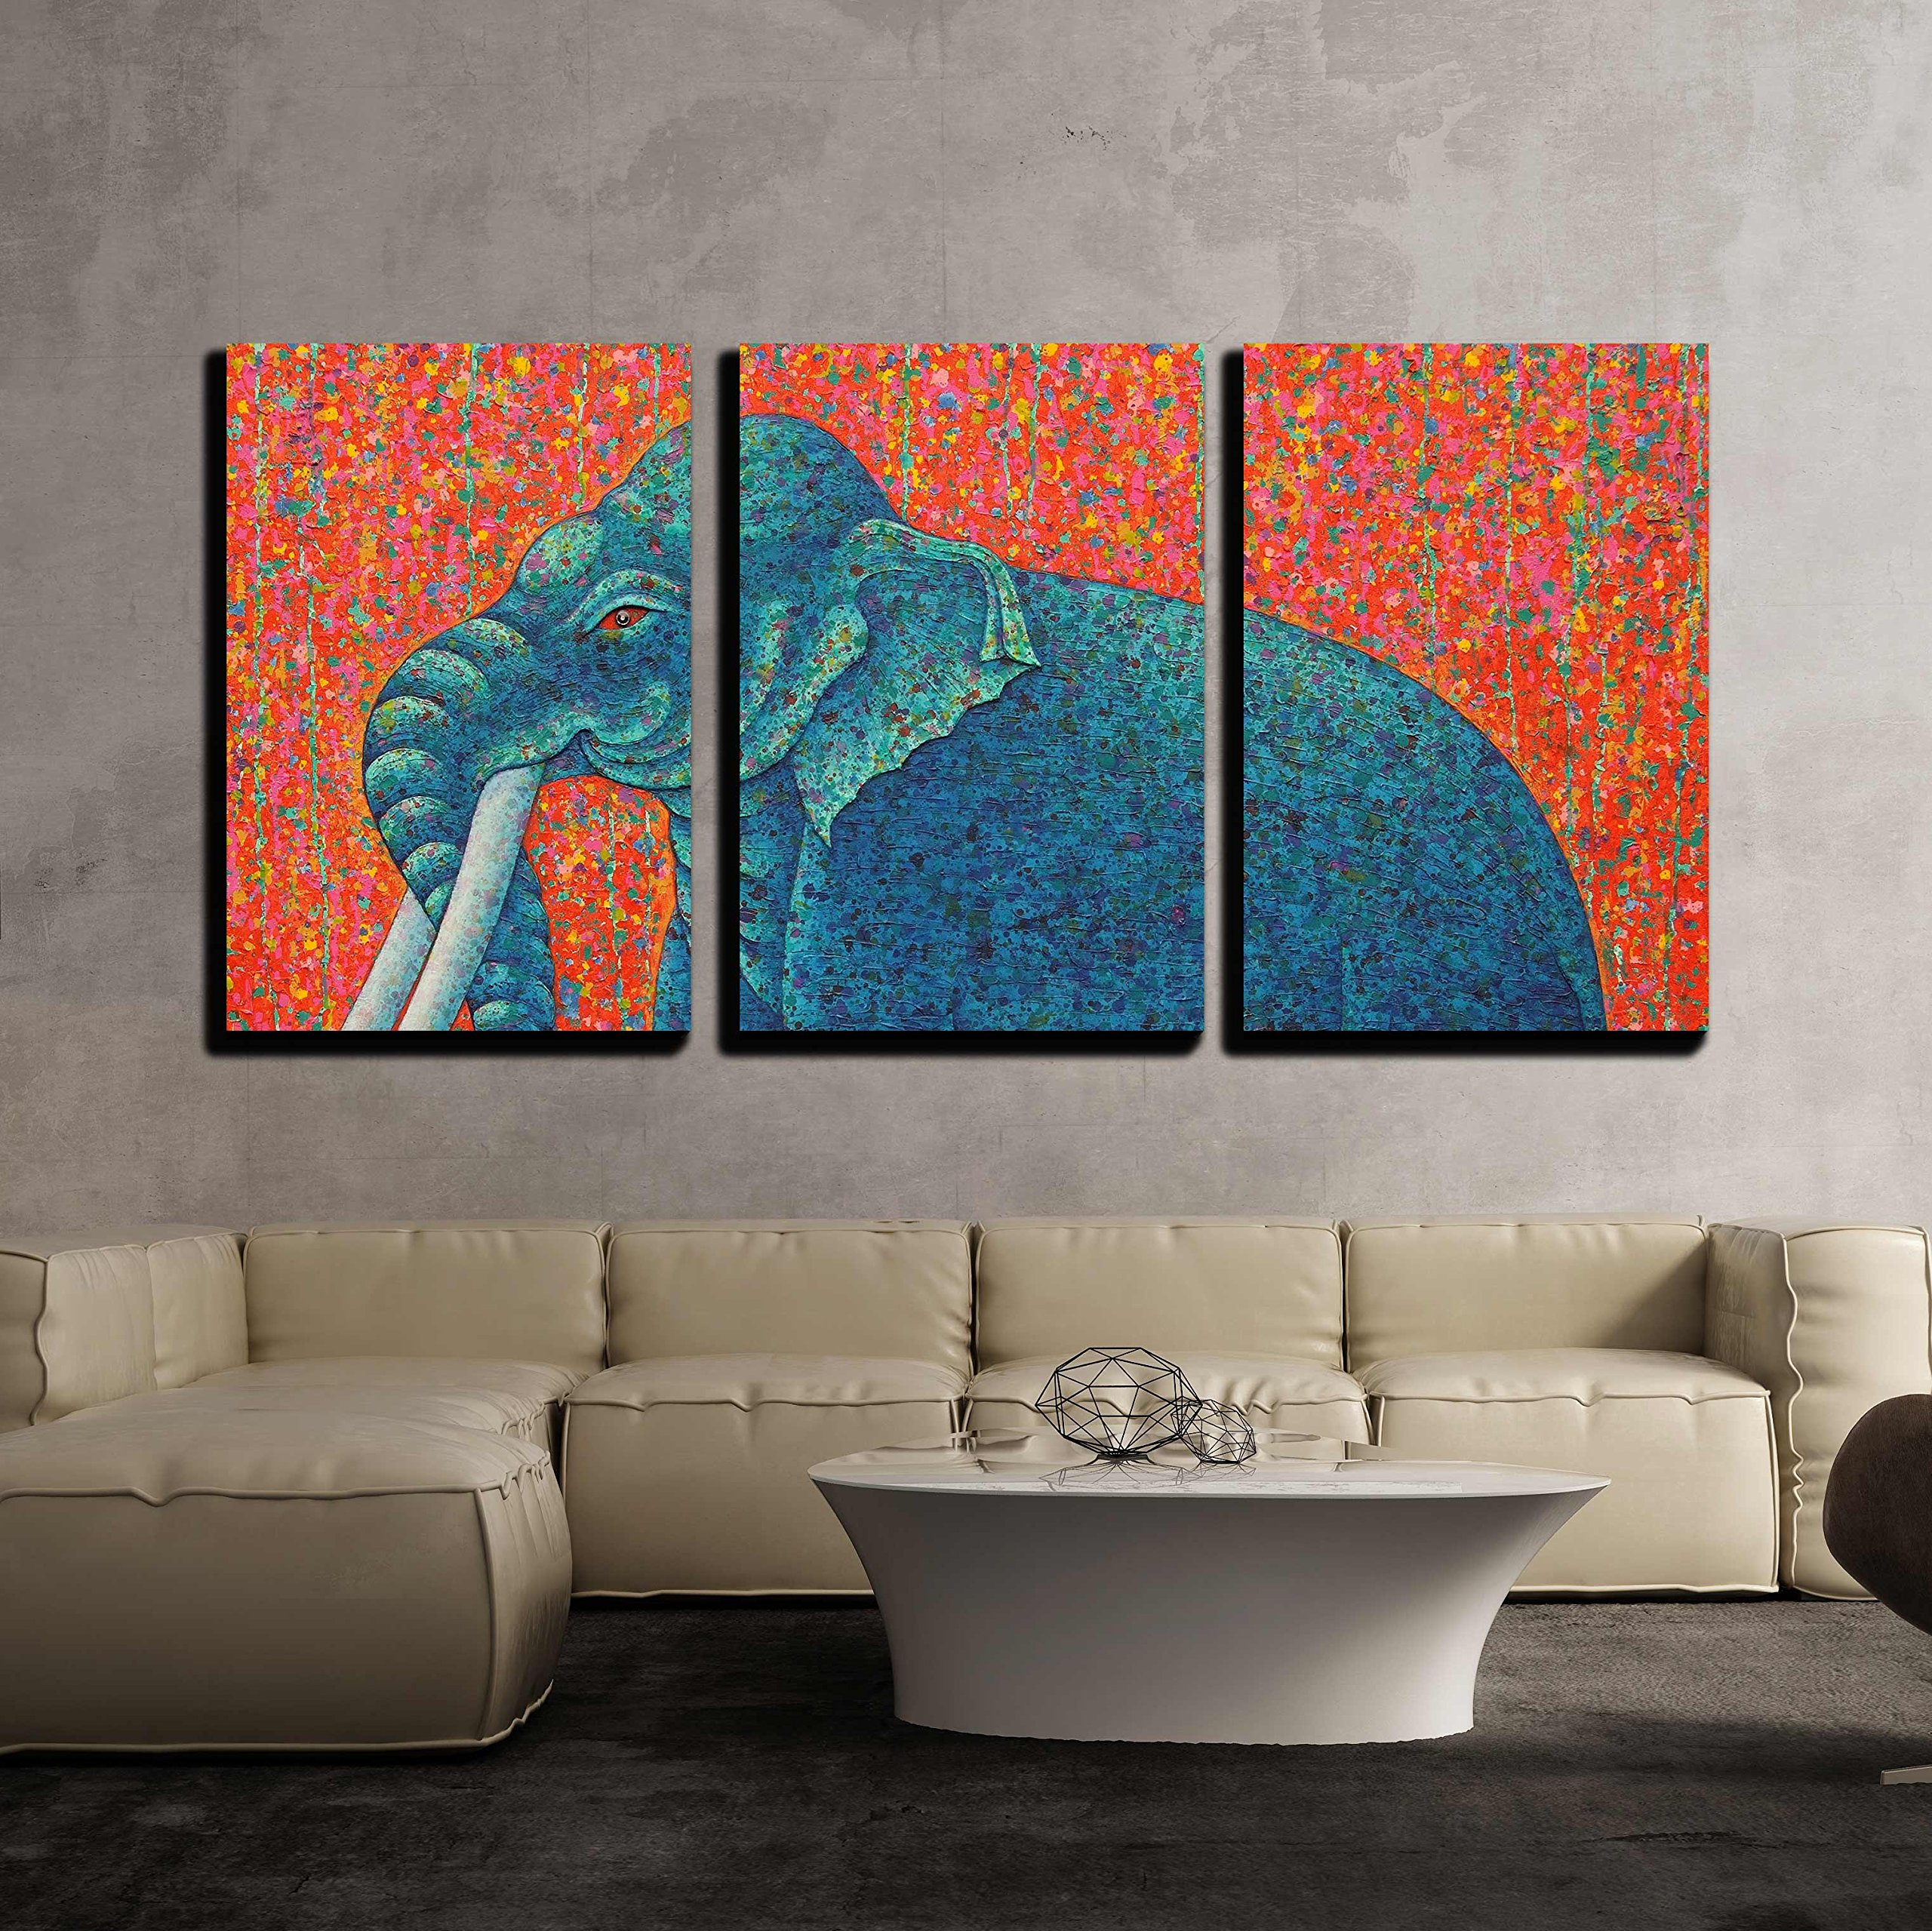 wall26 - 3 Piece Canvas Wall Art - Blue Elephant 2010. Original Acrylic Painting on Canvas.Tradition Thai Painting - Modern Home Decor Stretched and Framed Ready to Hang - 16''x24''x3 Panels by wall26